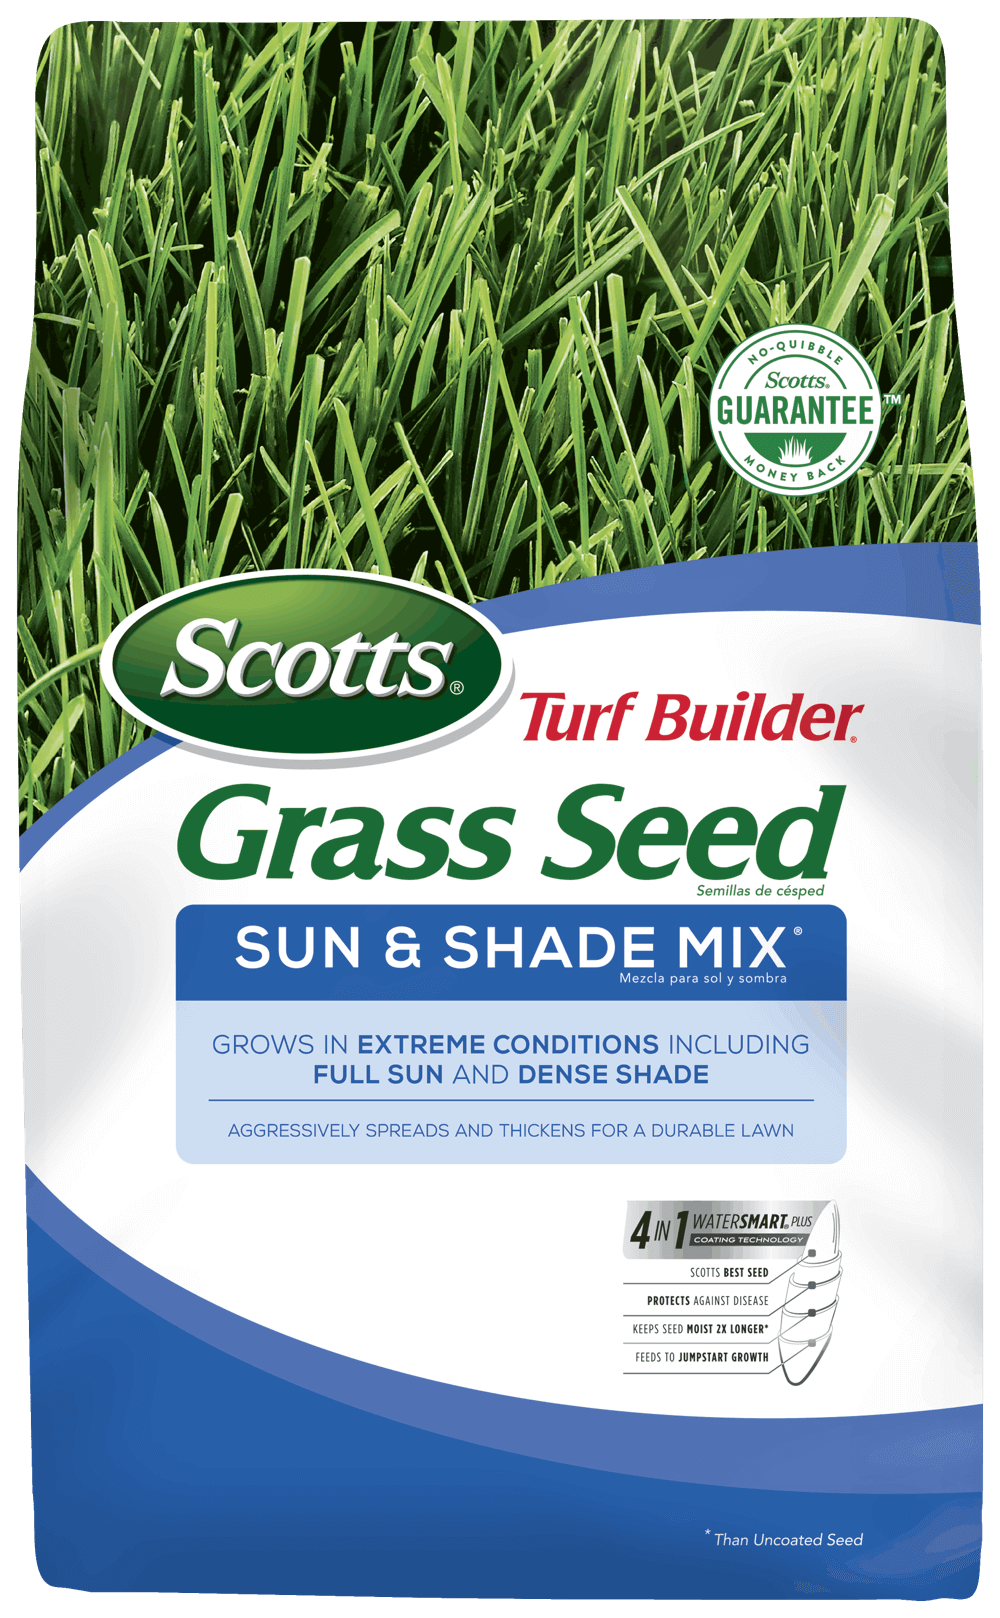 Scotts Turf Builder Grass Seed Sun And Shade Mix Grass Seed Scotts